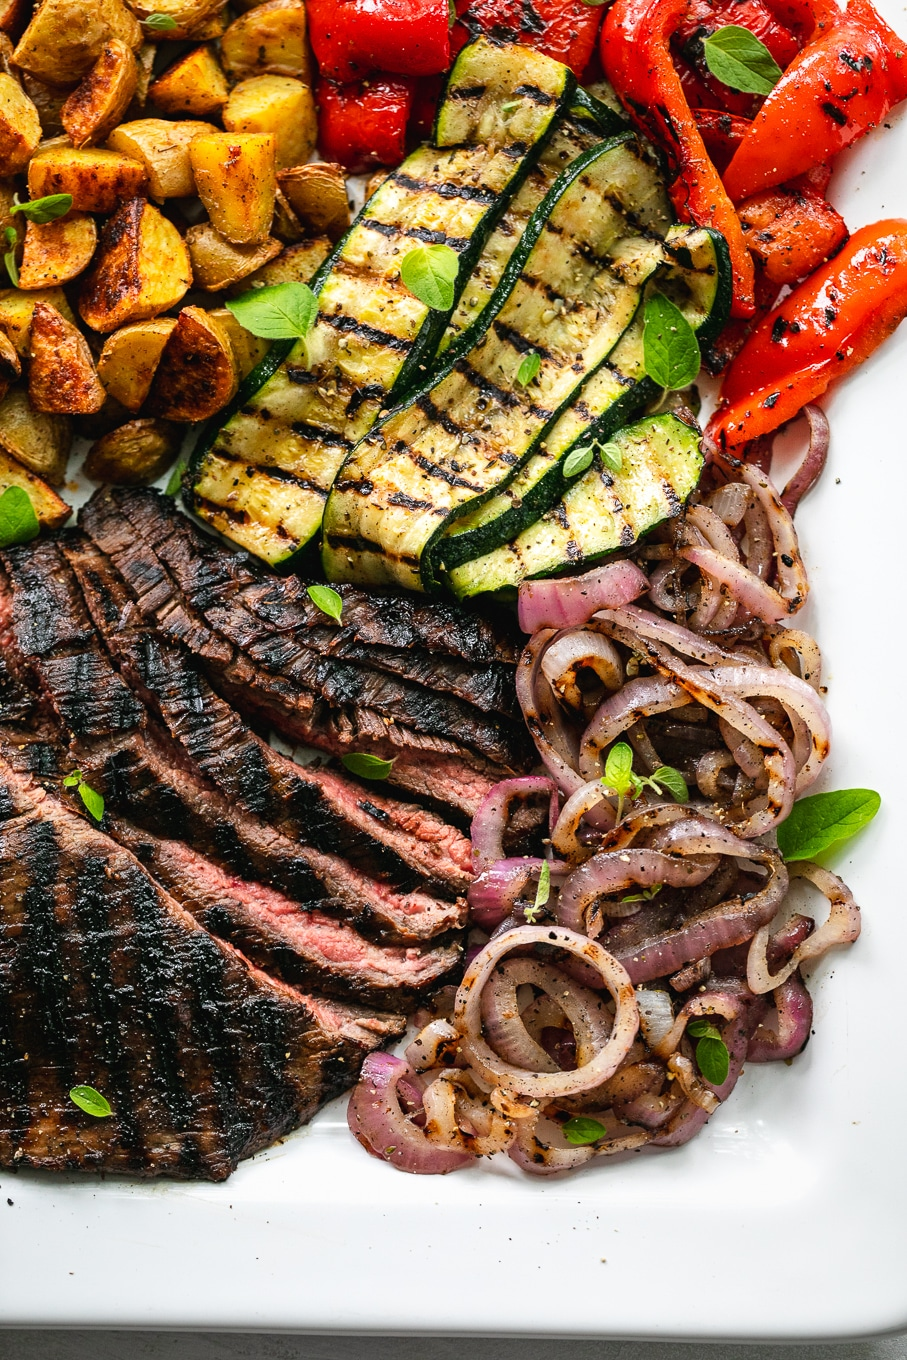 Overhead close up shot of a platter of flank steak, grilled vegetables, and roasted potatoes